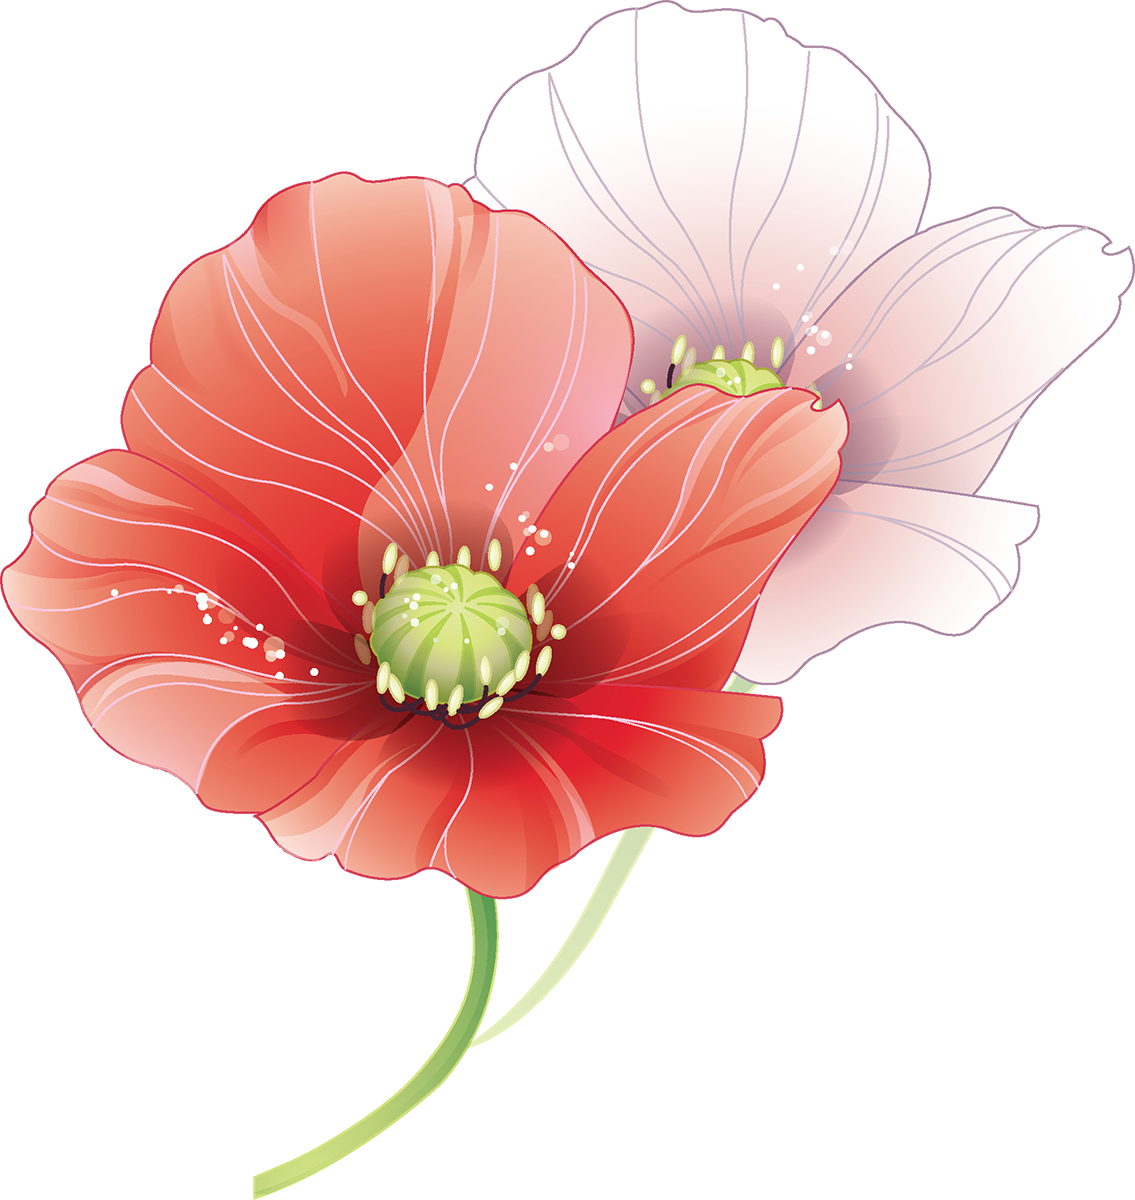 Tubes fleurs coquelicots pinterest. Poppy clipart watercolor